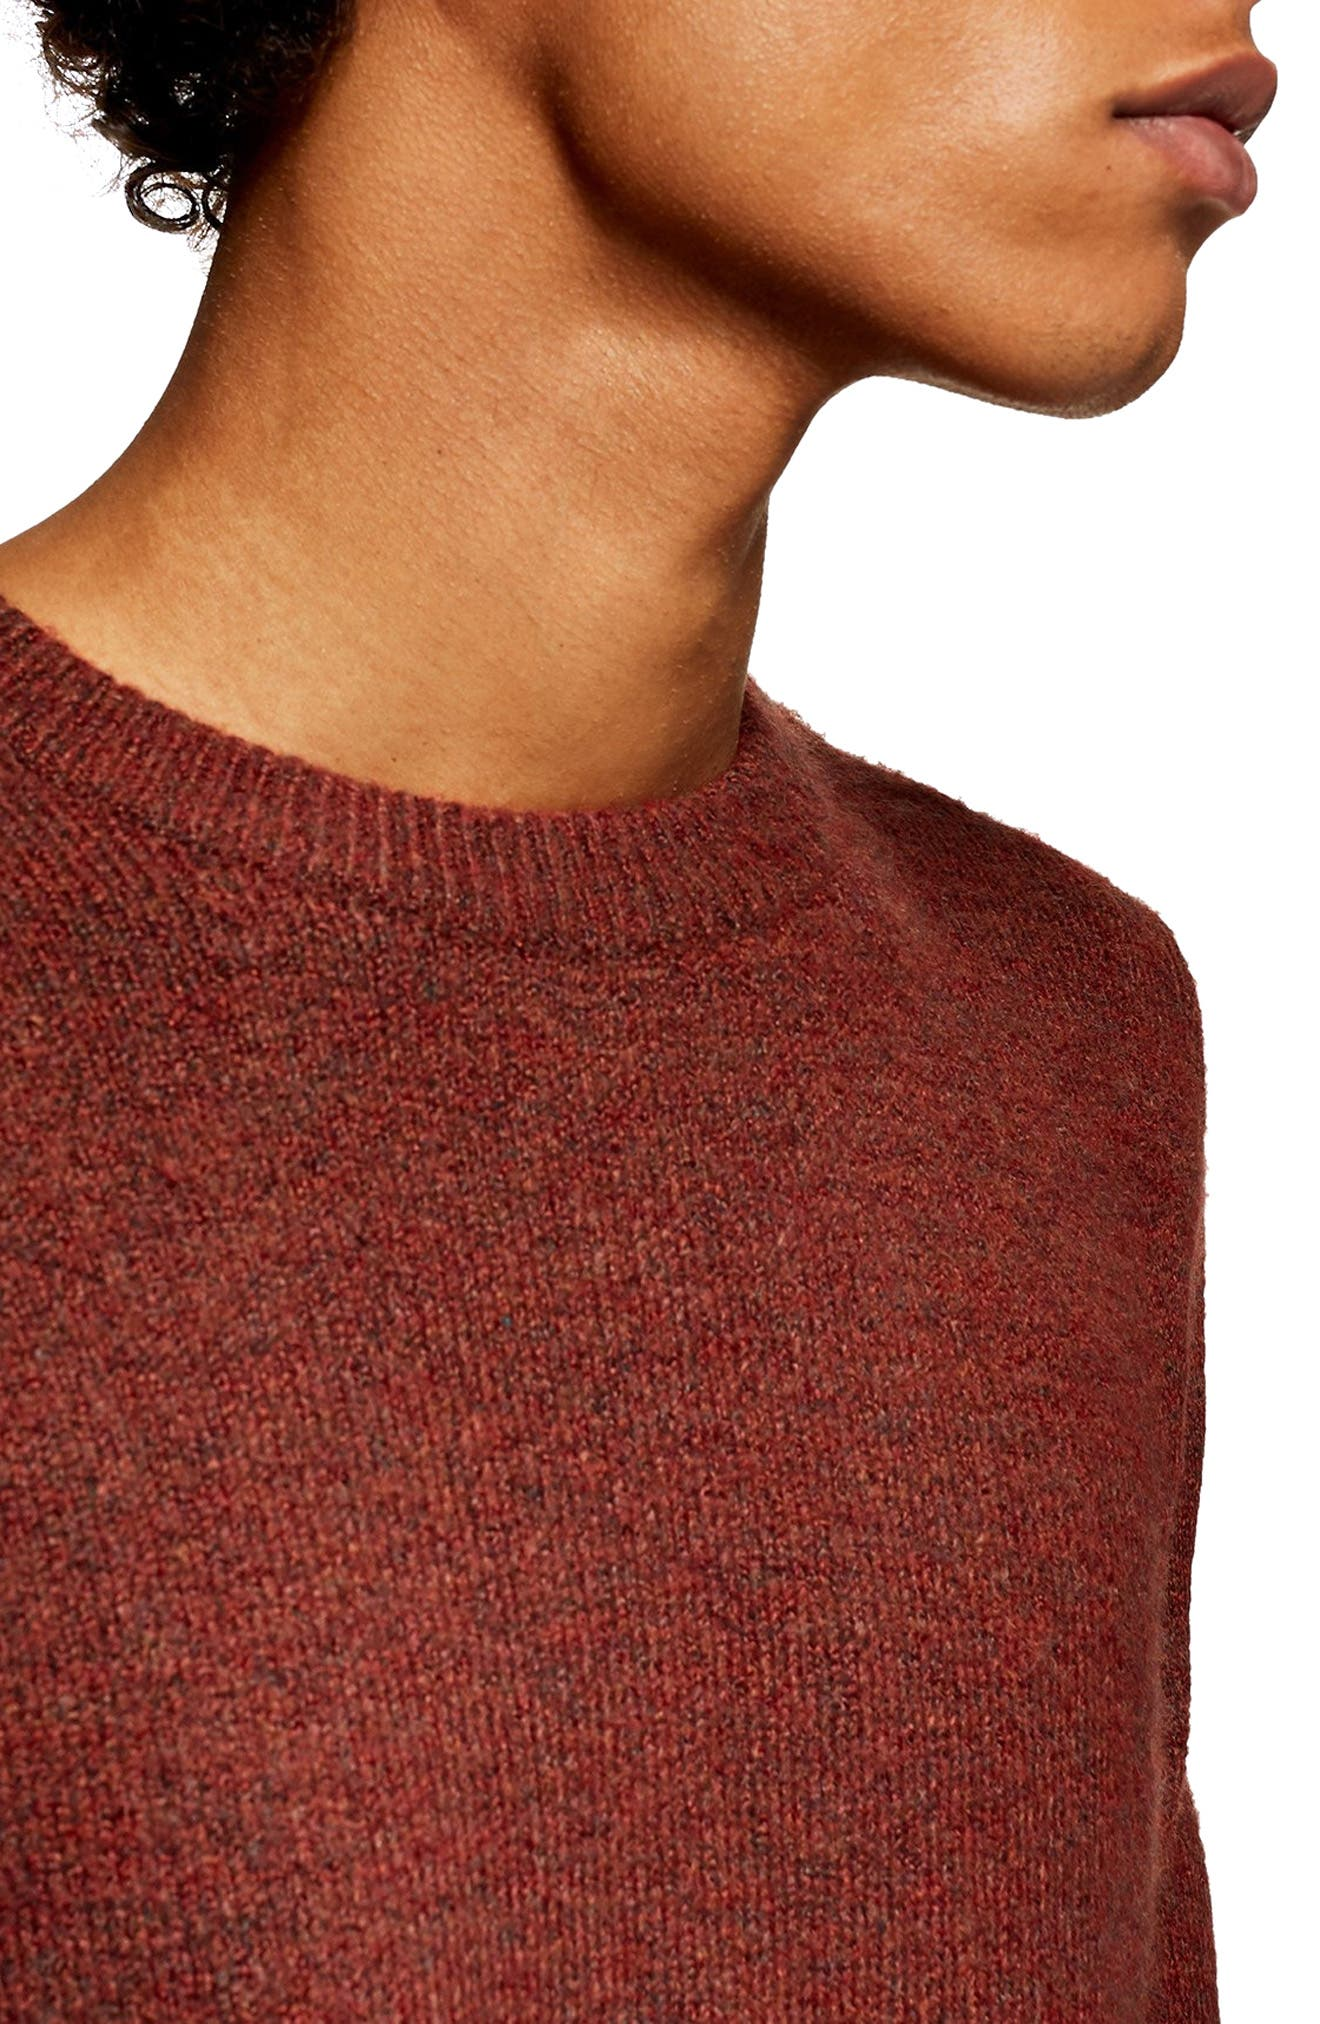 TOPMAN,                             Harlow Classic Fit Sweater,                             Alternate thumbnail 3, color,                             200